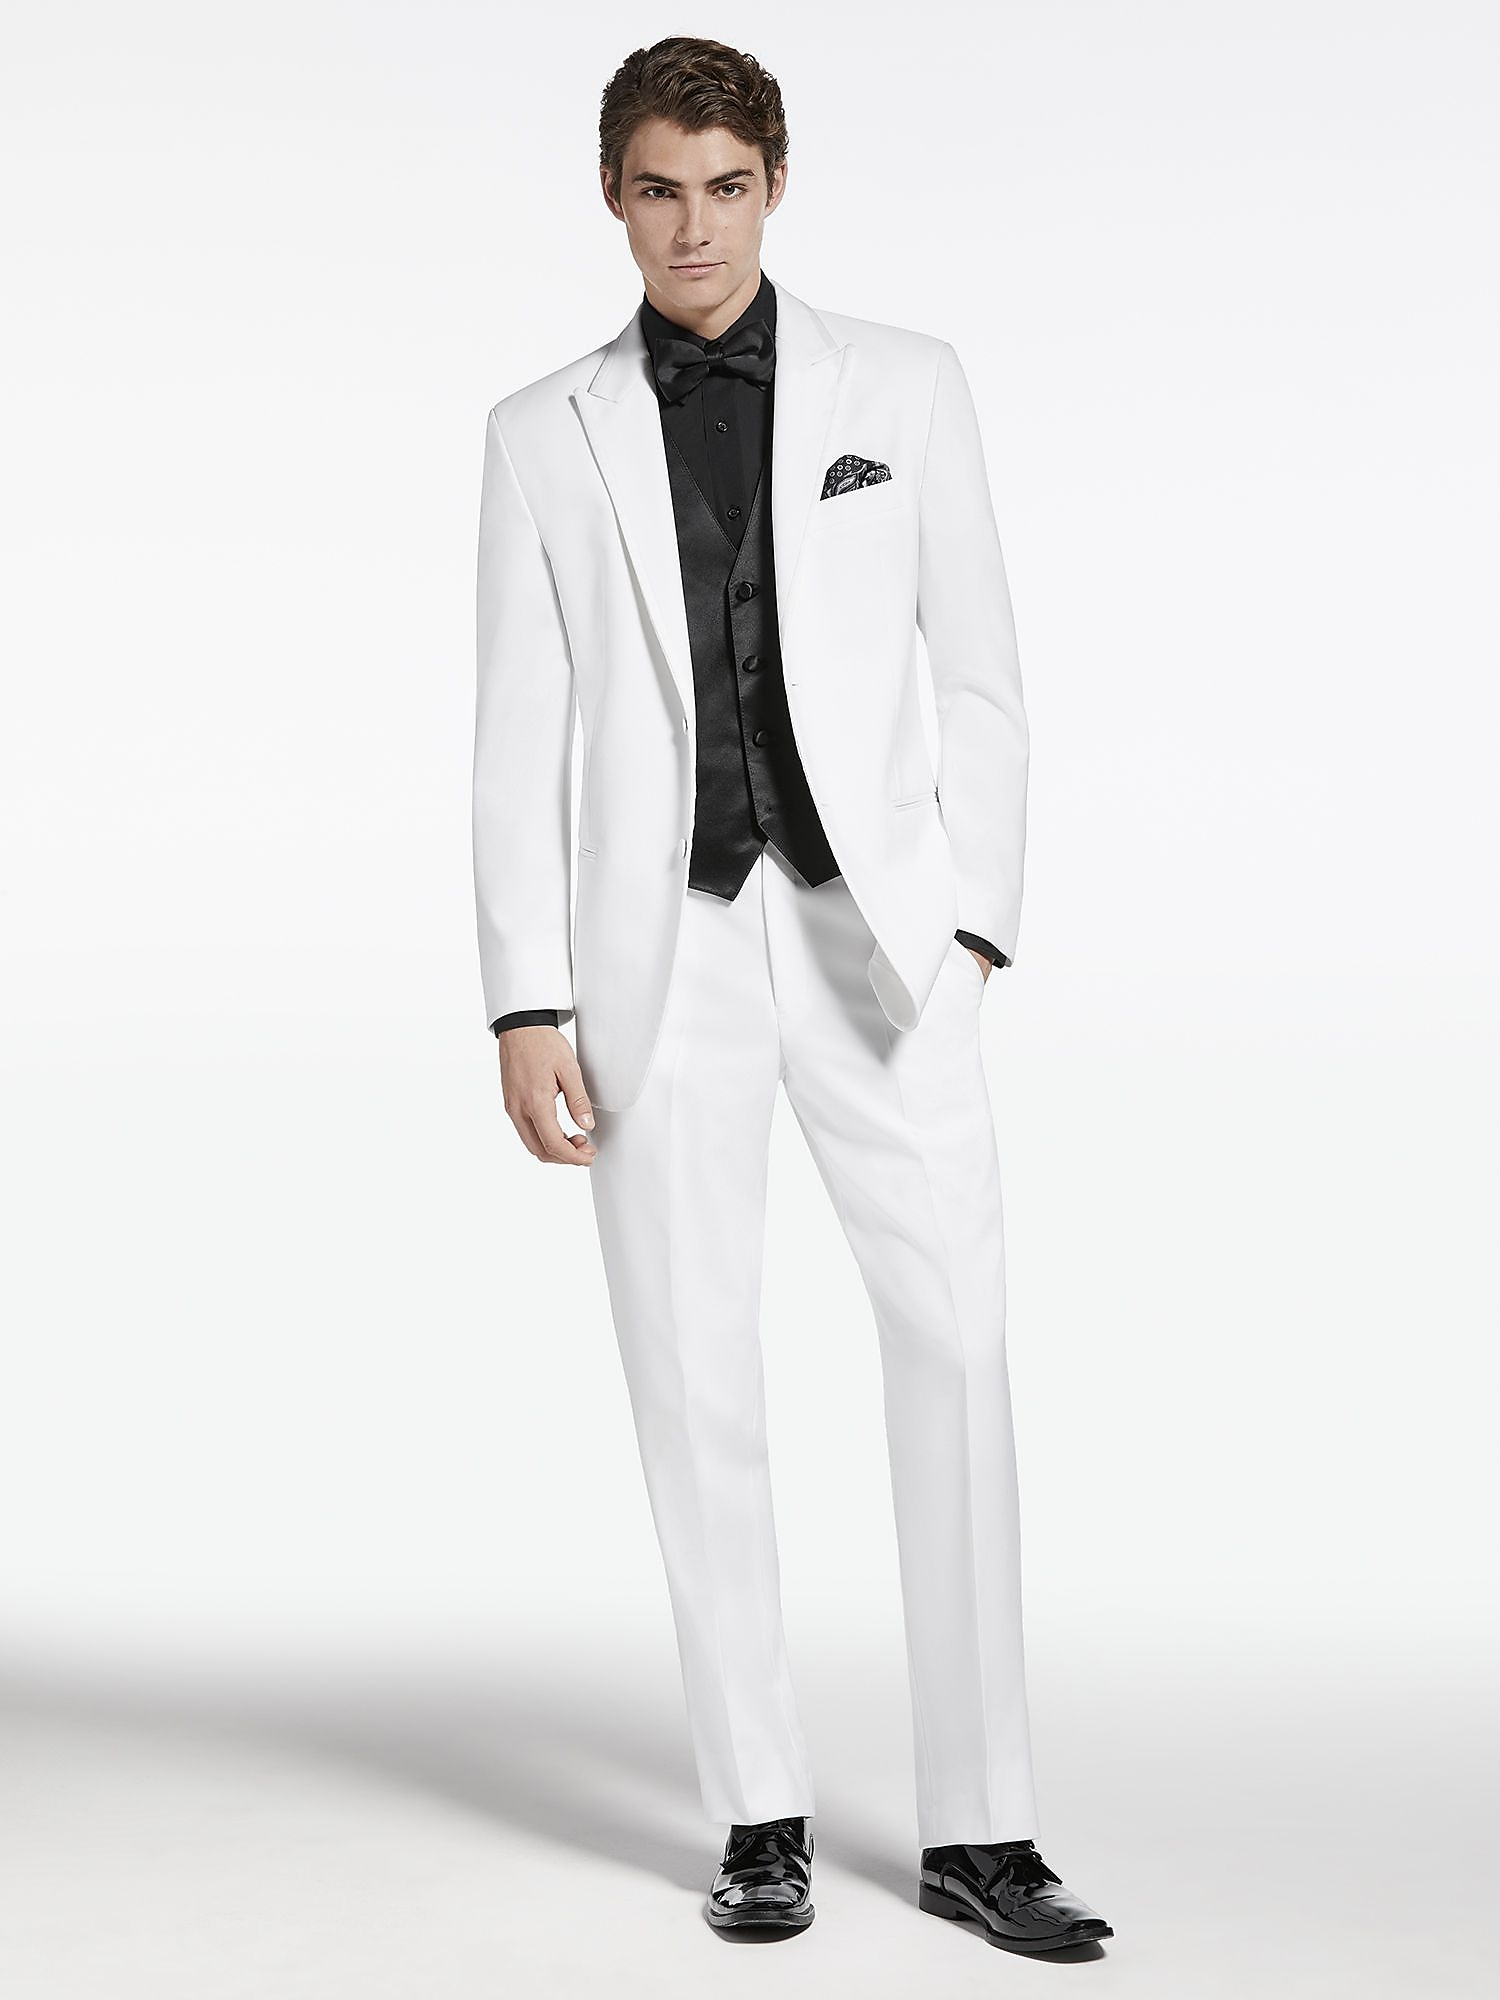 White Peak Lapel Tuxedo by Pronto Uomo | Tuxedo Rental | Men\'s Wearhouse